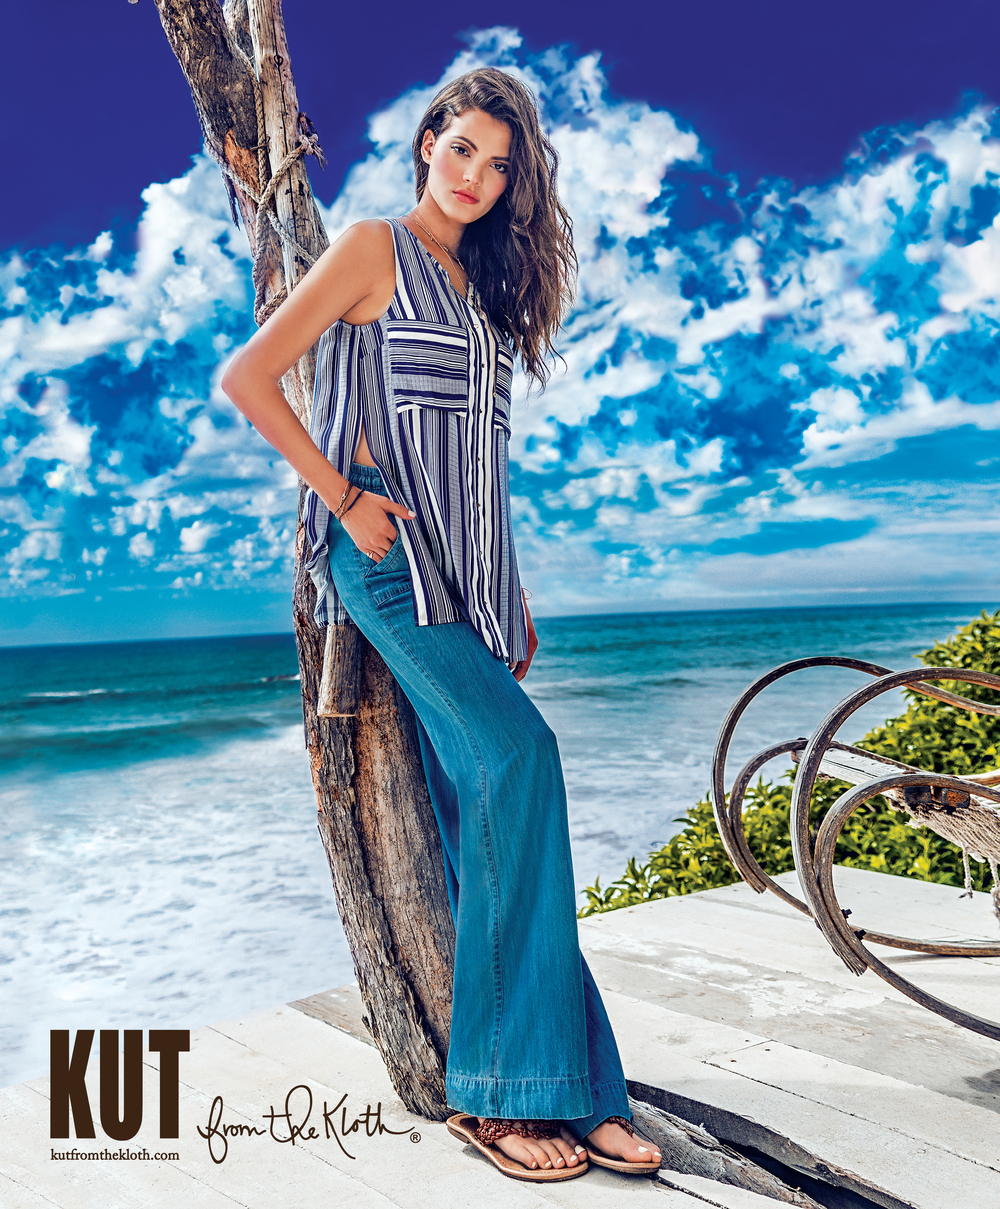 Kut from the Kloth 2015 Campaign